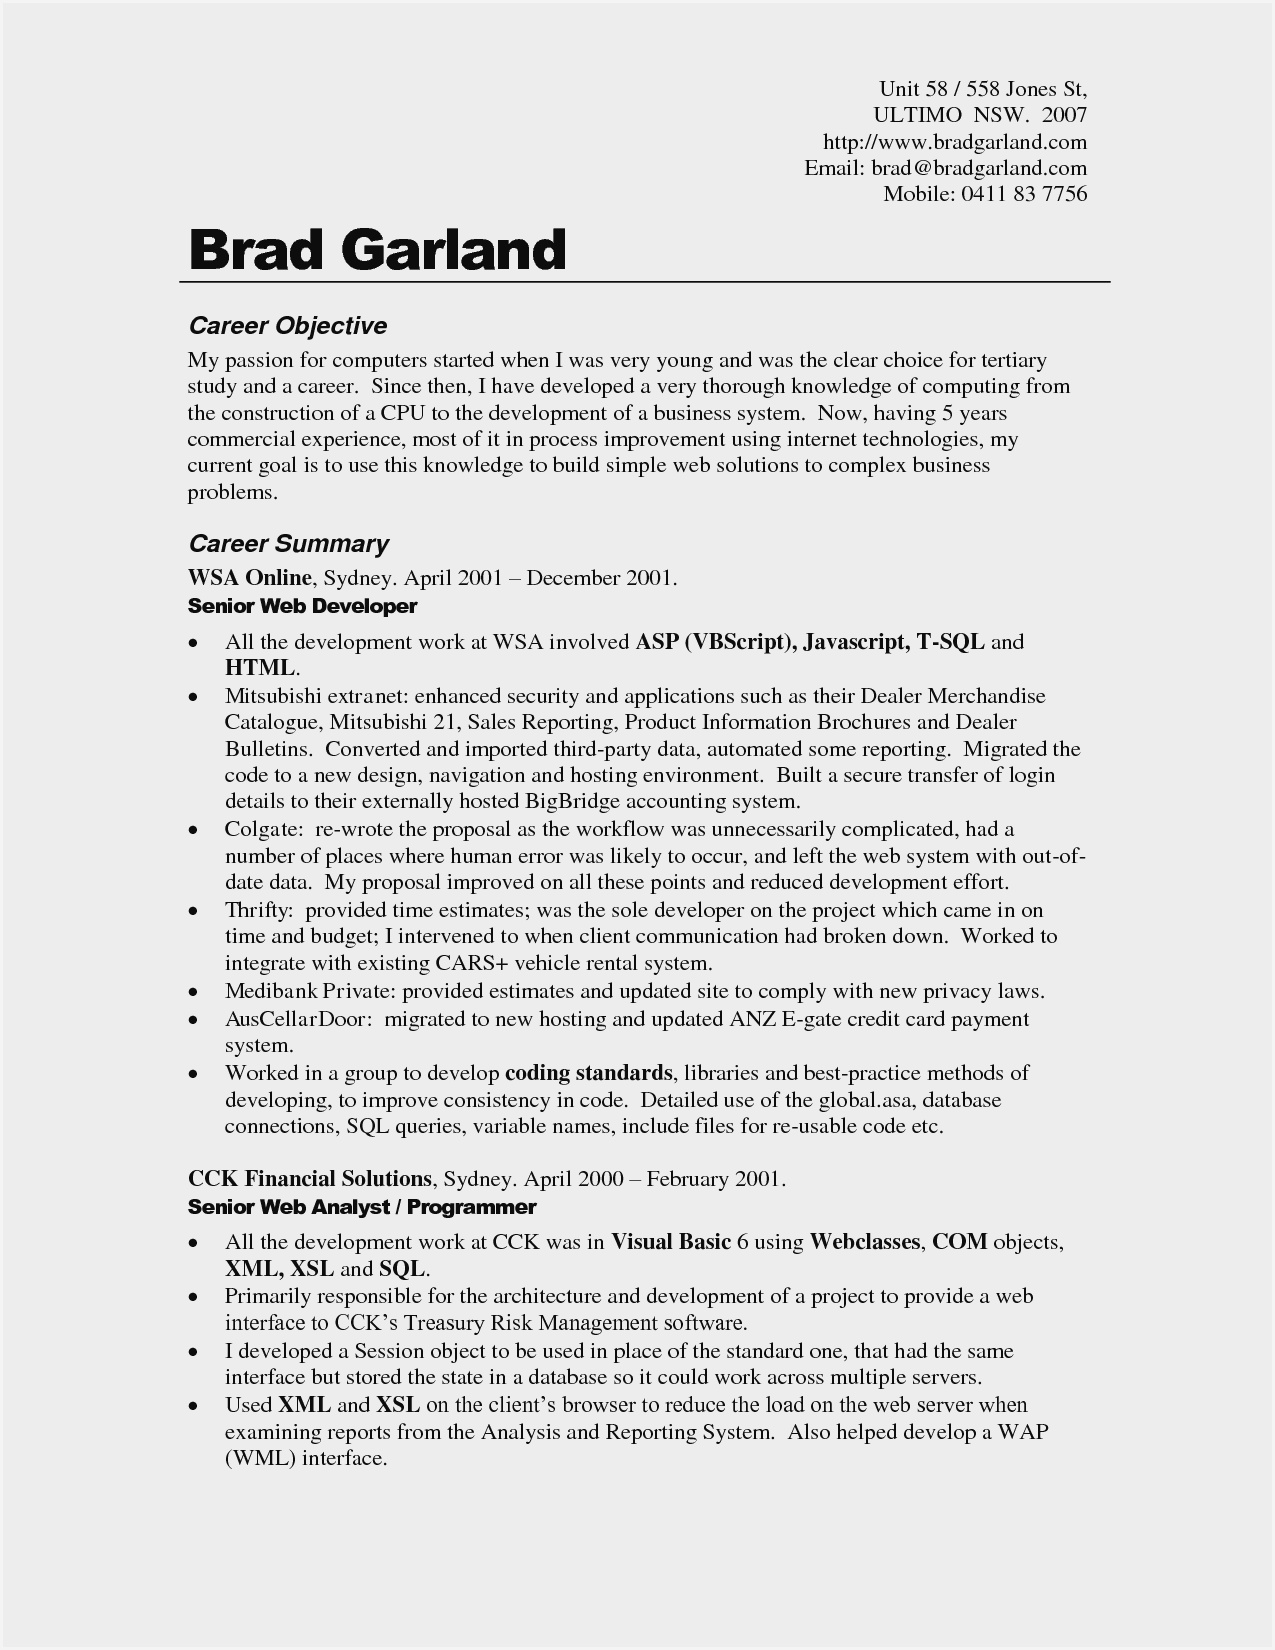 examples of great resume objective statements sample best for admissions counselor Resume Best Resume Objective Statements